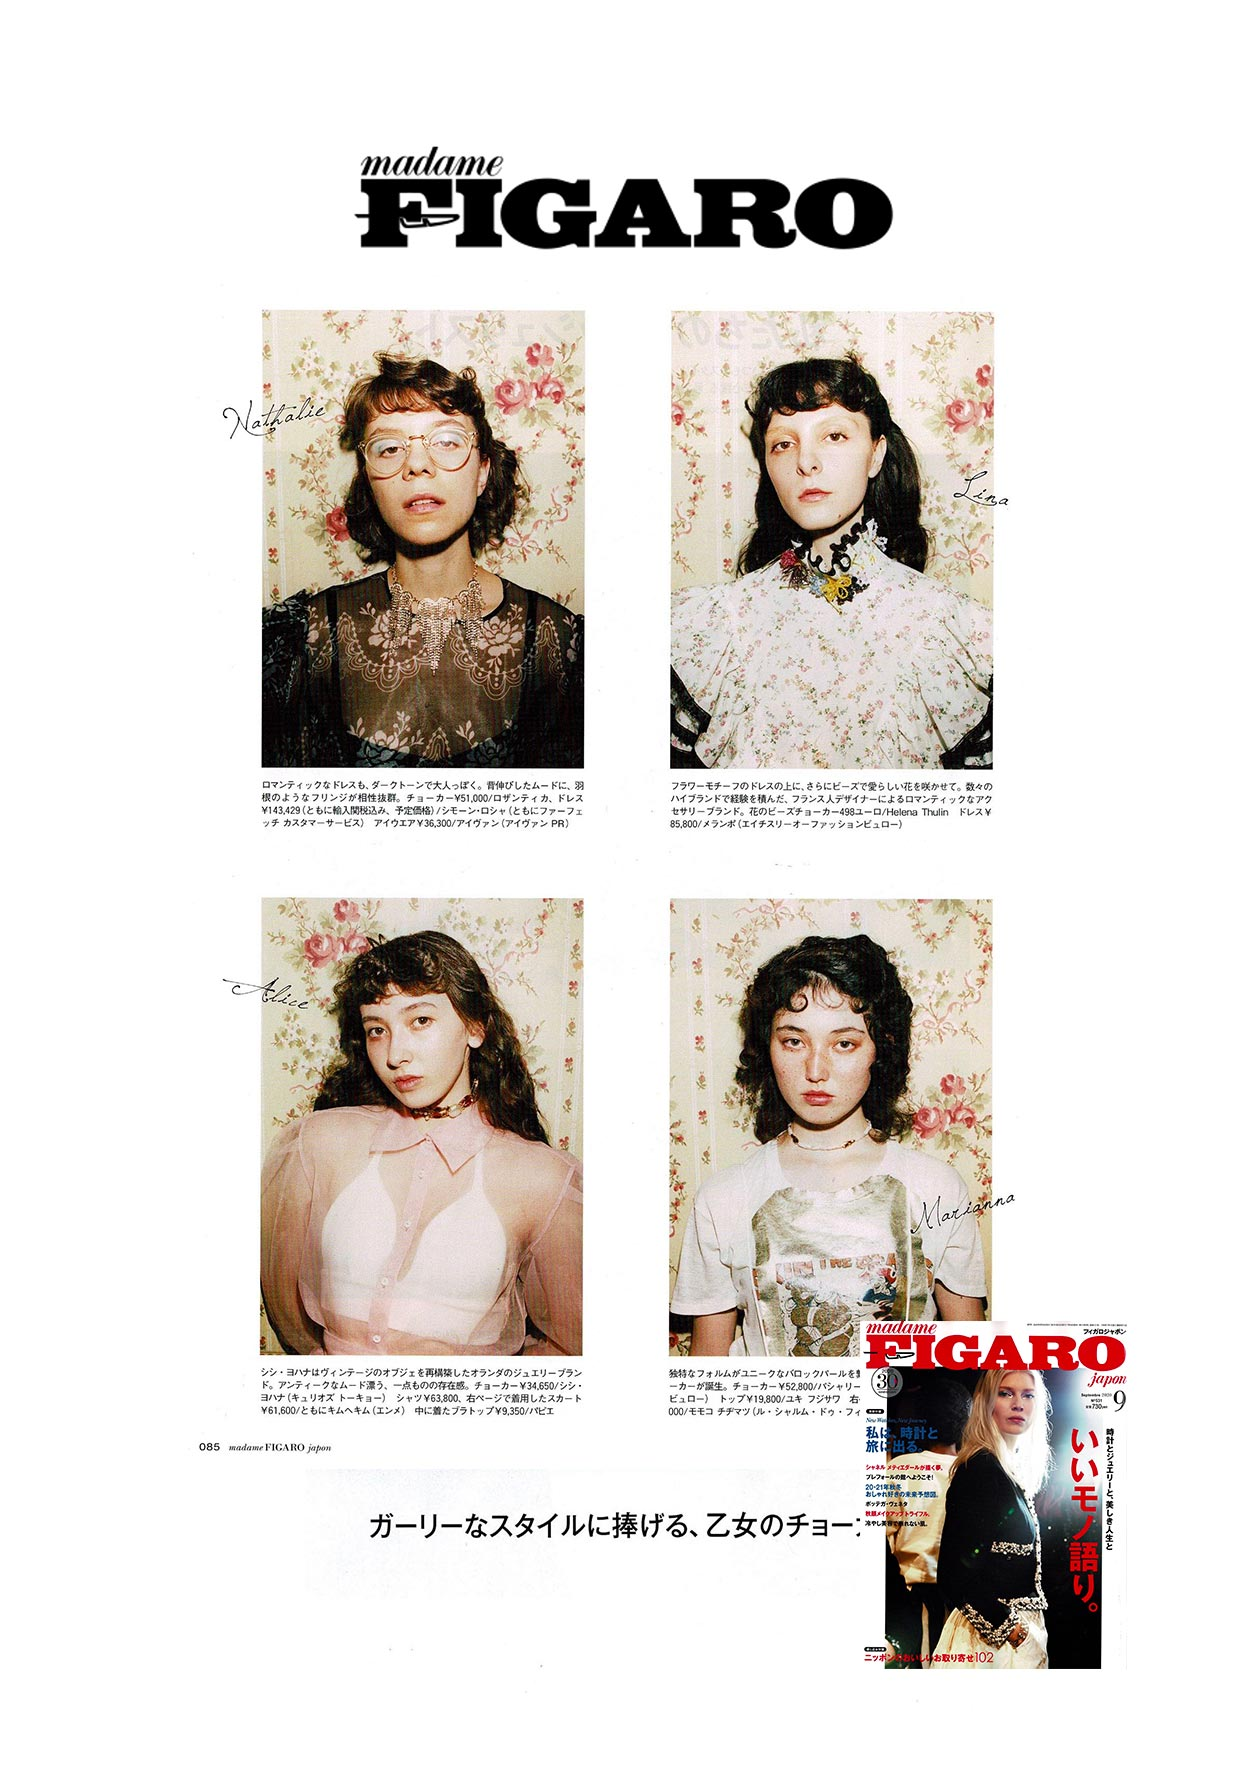 melampo press on madame figaro japan magazine - photo 2